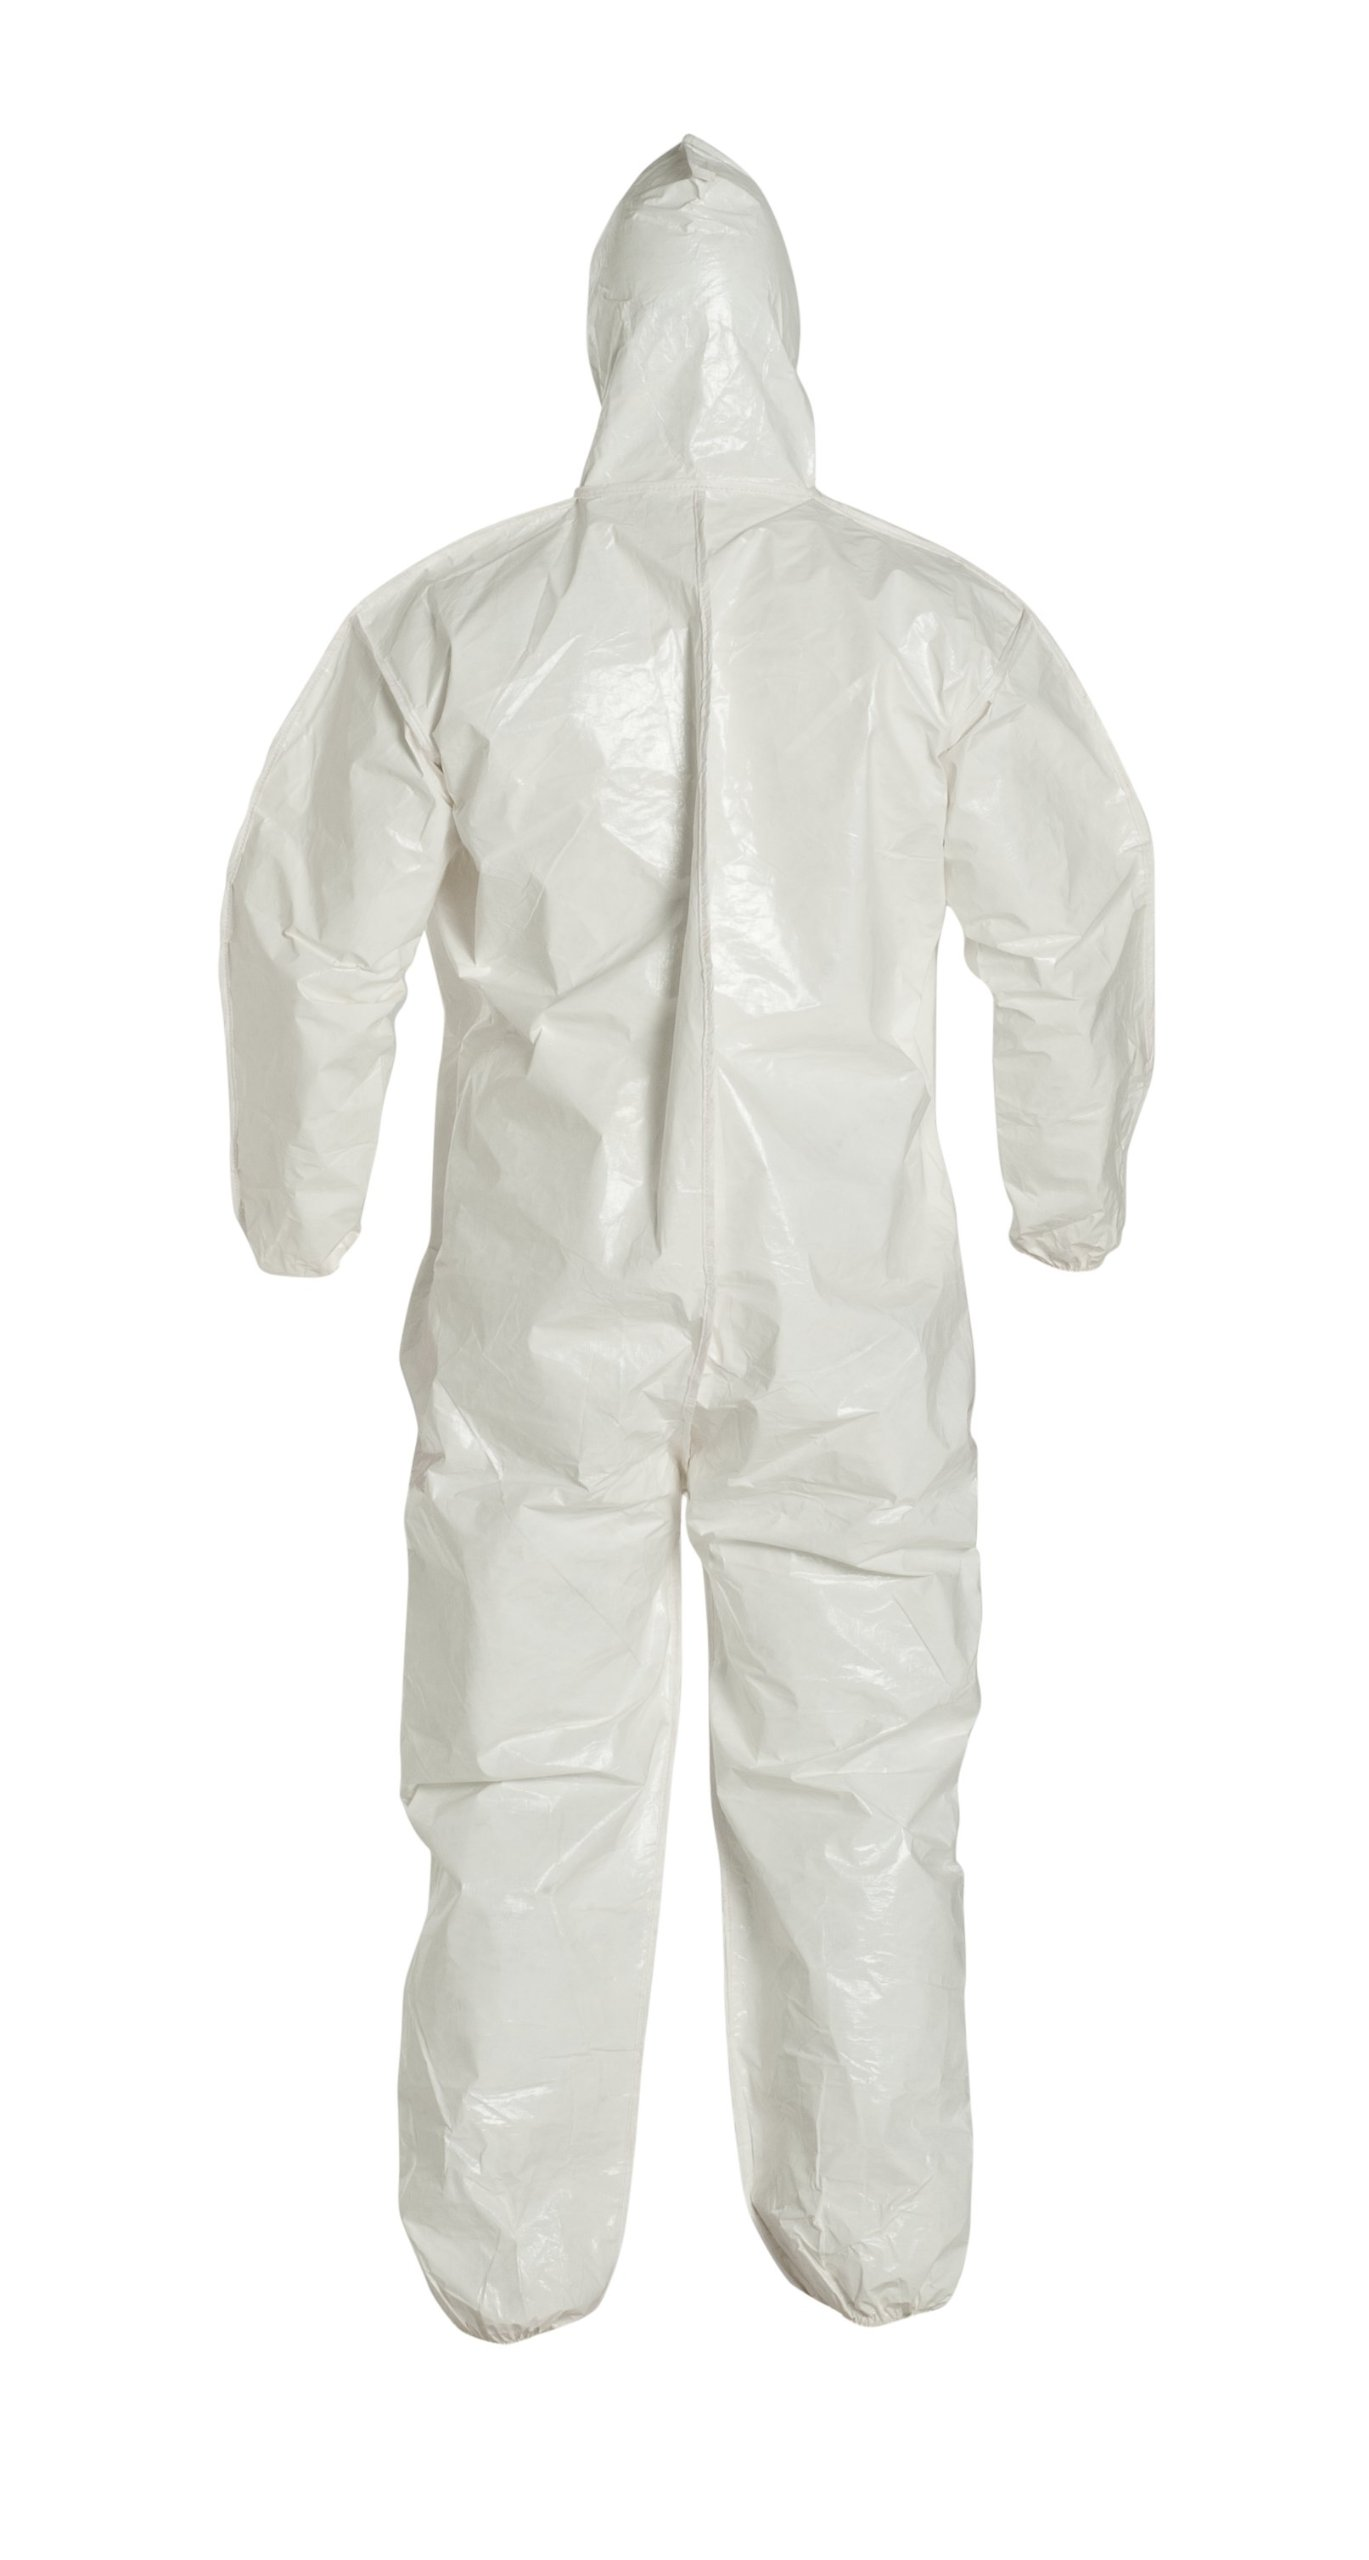 DuPont Tychem 4000 SL127B Disposable Chemical Resistant Coverall with Hood, Elastic Cuff and Bound Seams, White, 2X-Large (Pack of 12) by DuPont (Image #4)